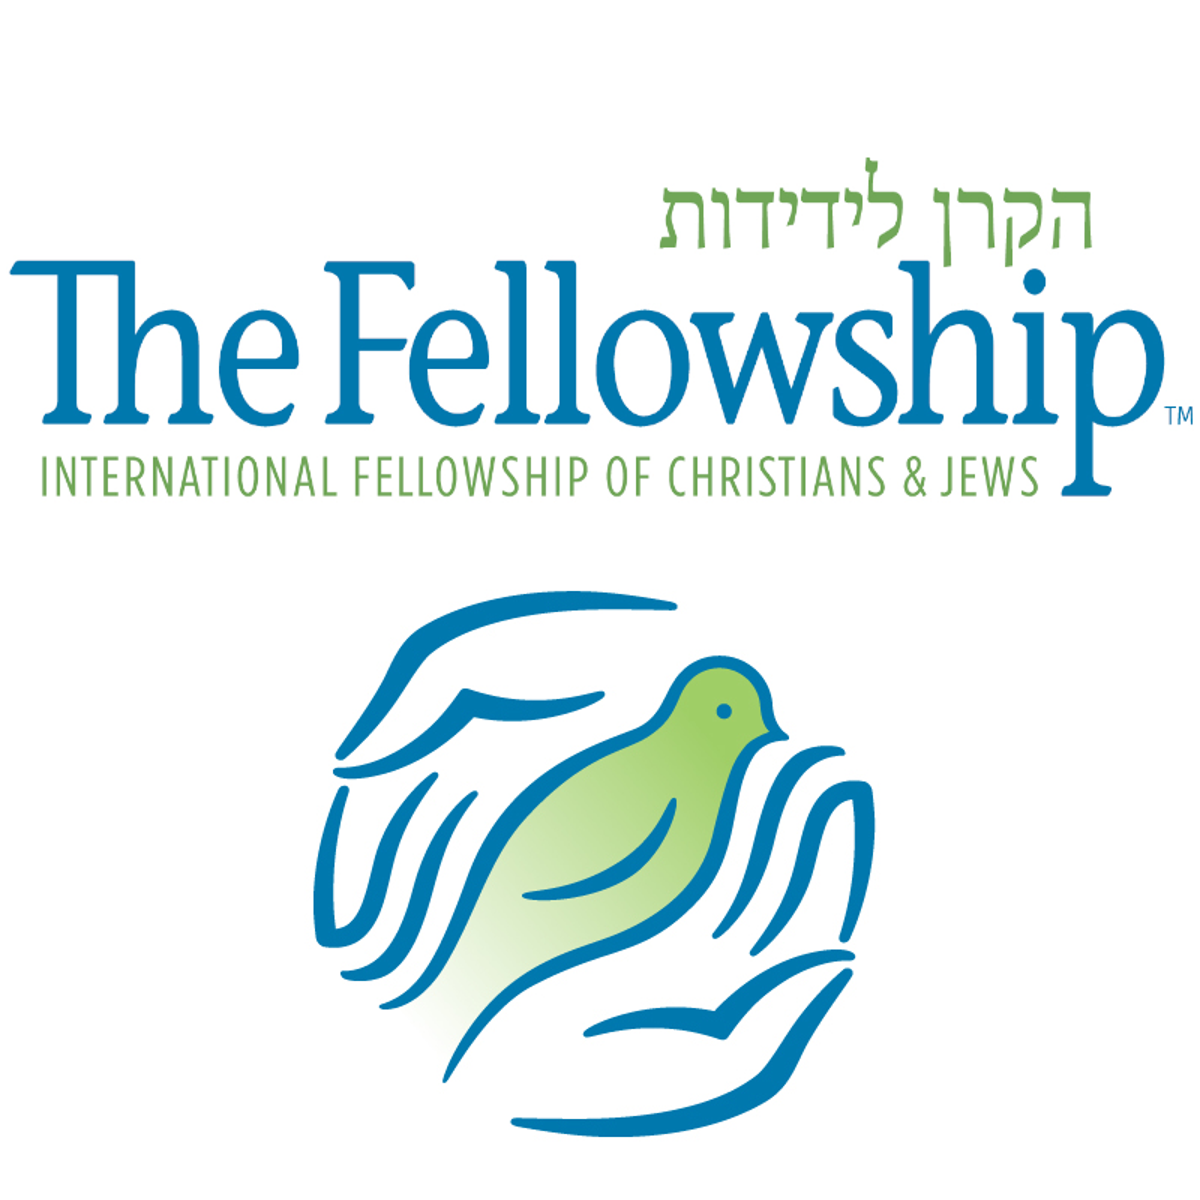 International Fellowship of Christians and Jews